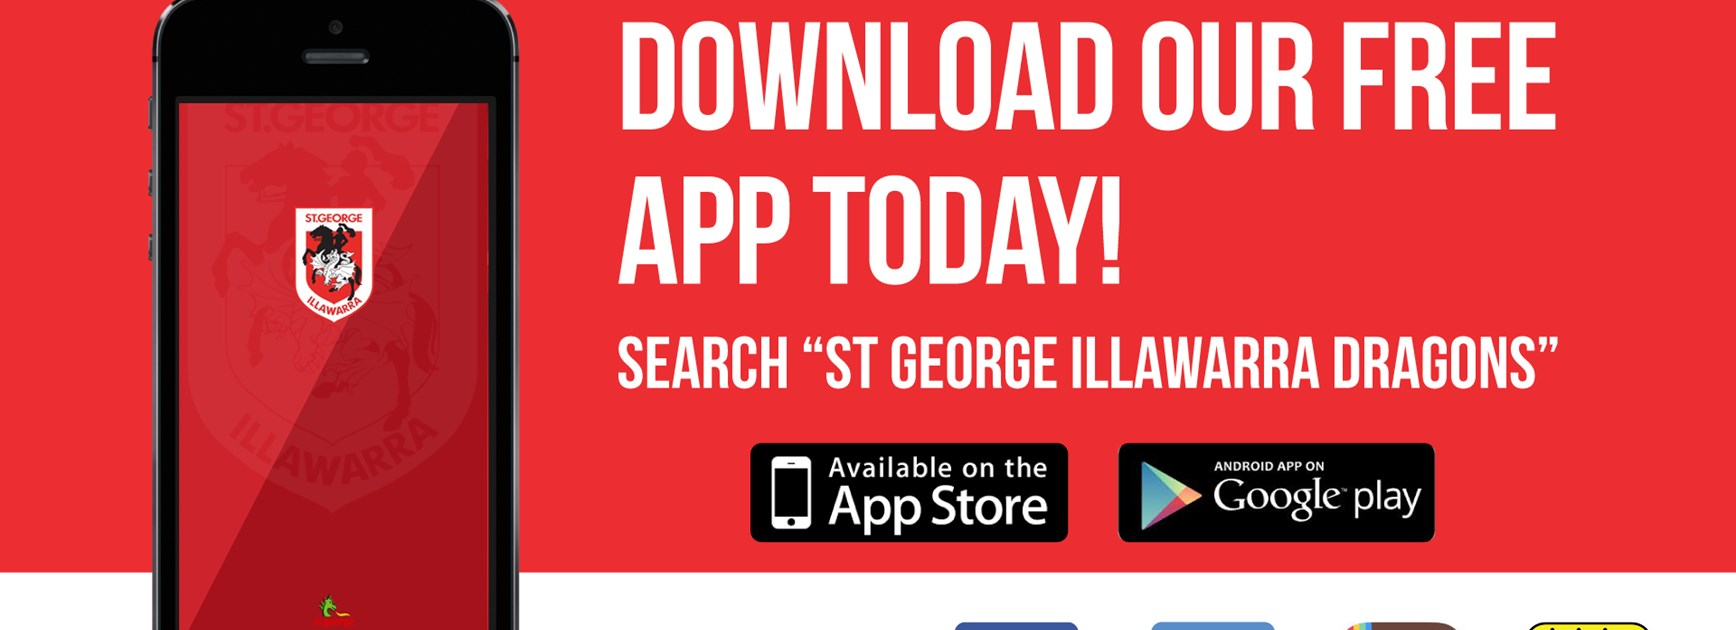 Dragons app and live game coverage update